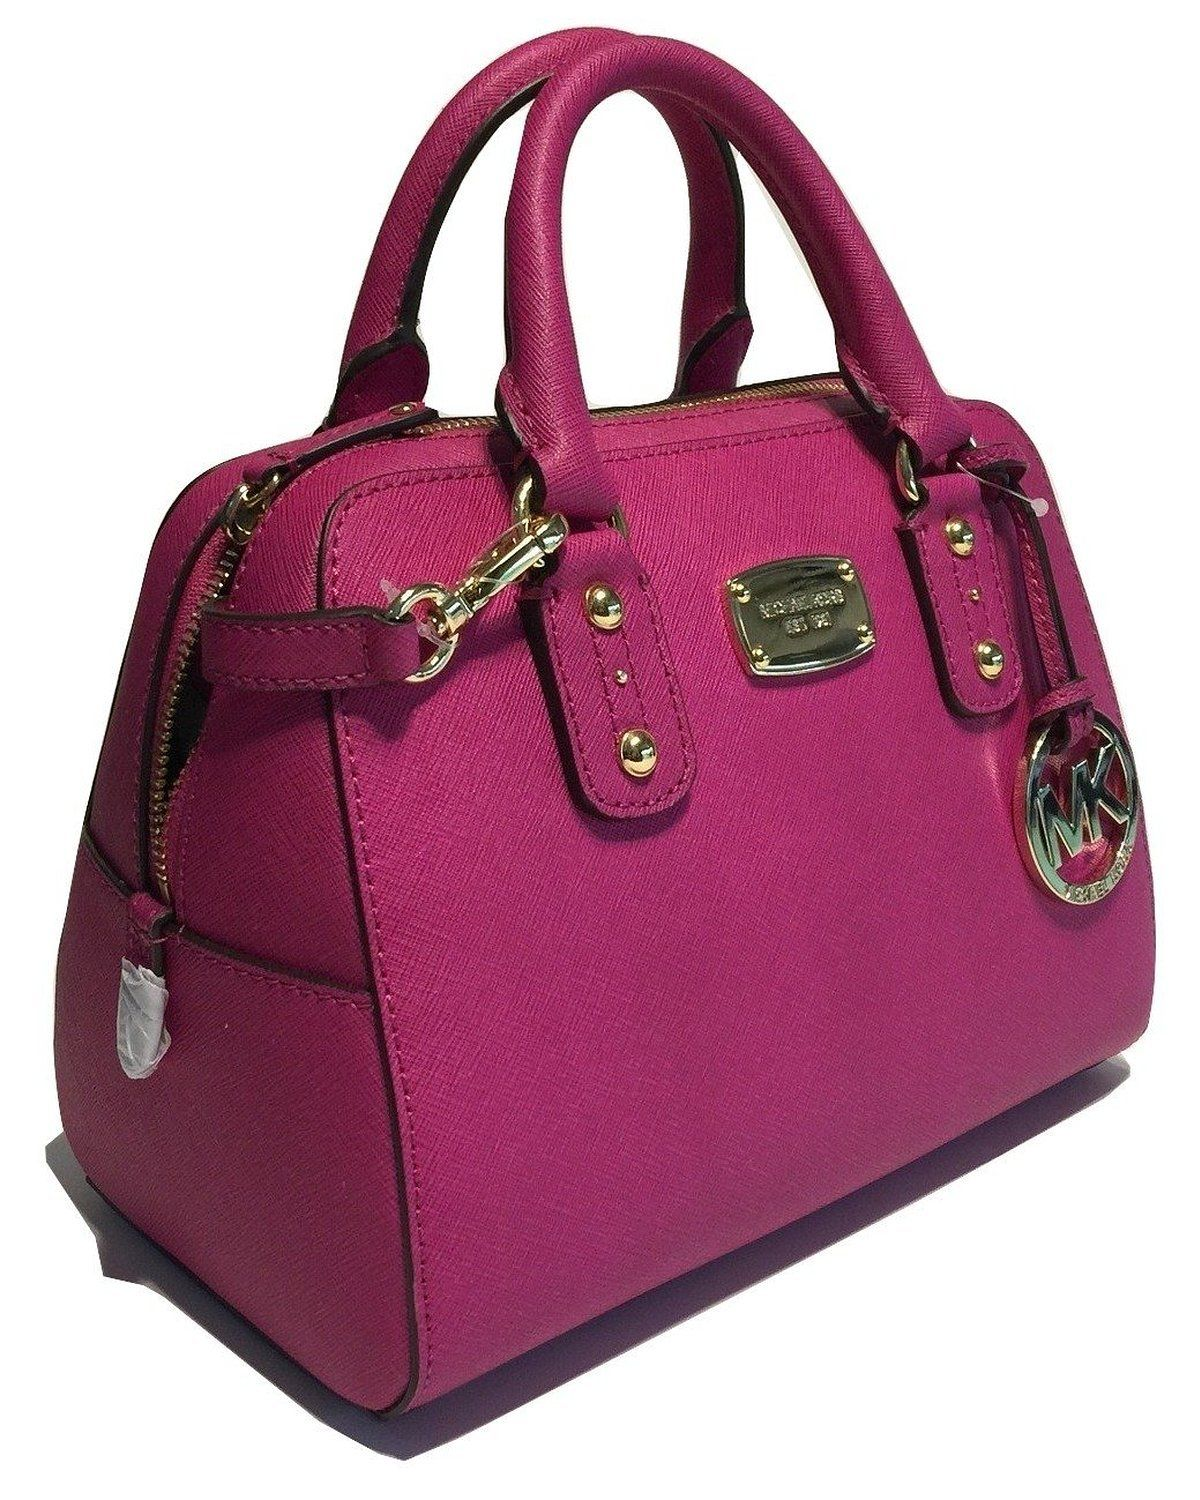 7f9f1cf07b91 Michael Kors Small Satchel Saffiano Leather (Fuschia): Handbags: Amazon.com